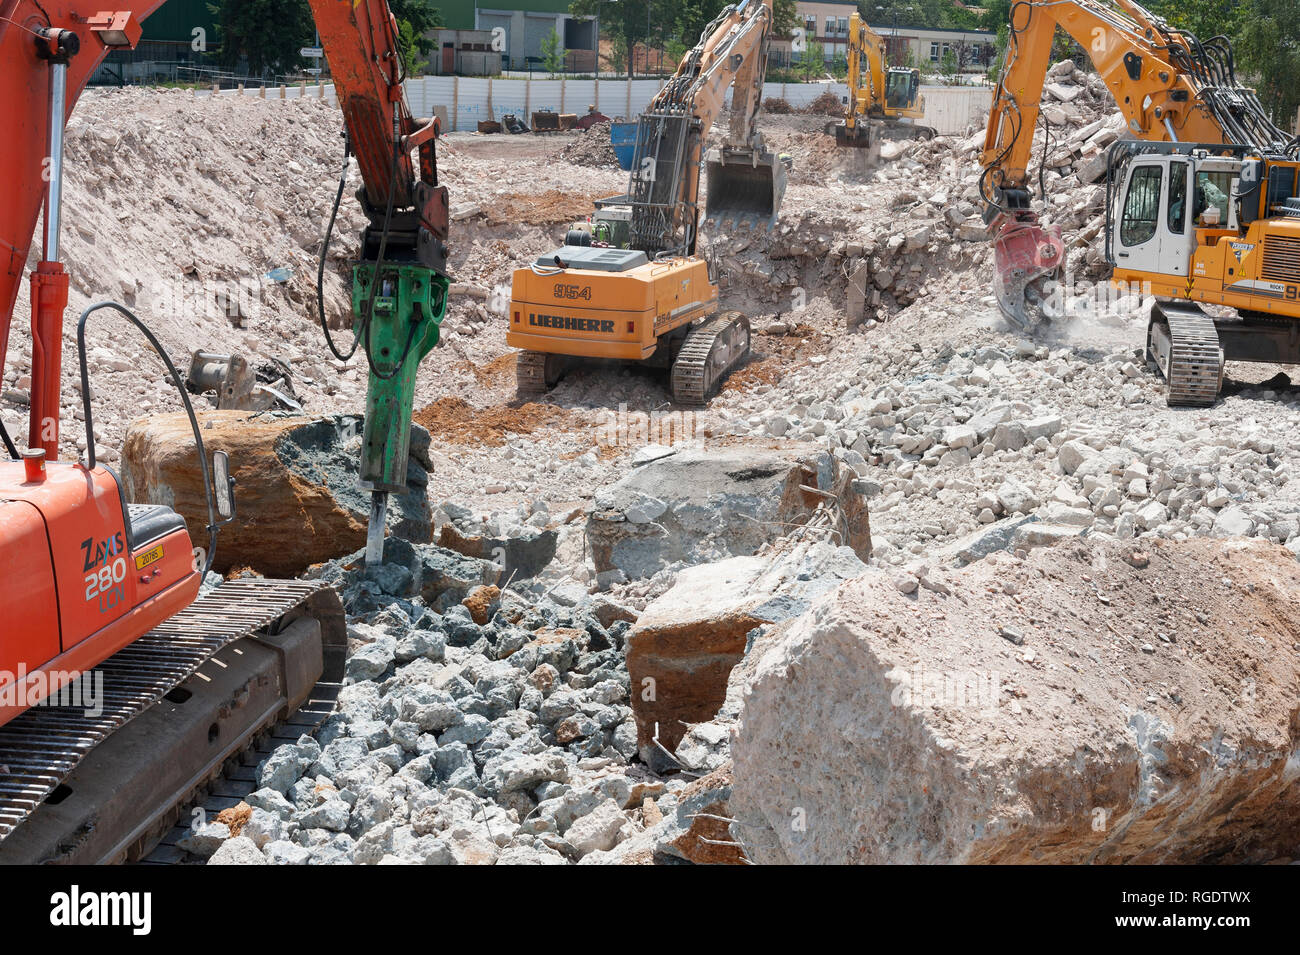 Deconstruction site. Four hydraulic excavators in action with different tools: hydrolic rock breaker (in the foreground), bucket and concrete cracker. Stock Photo